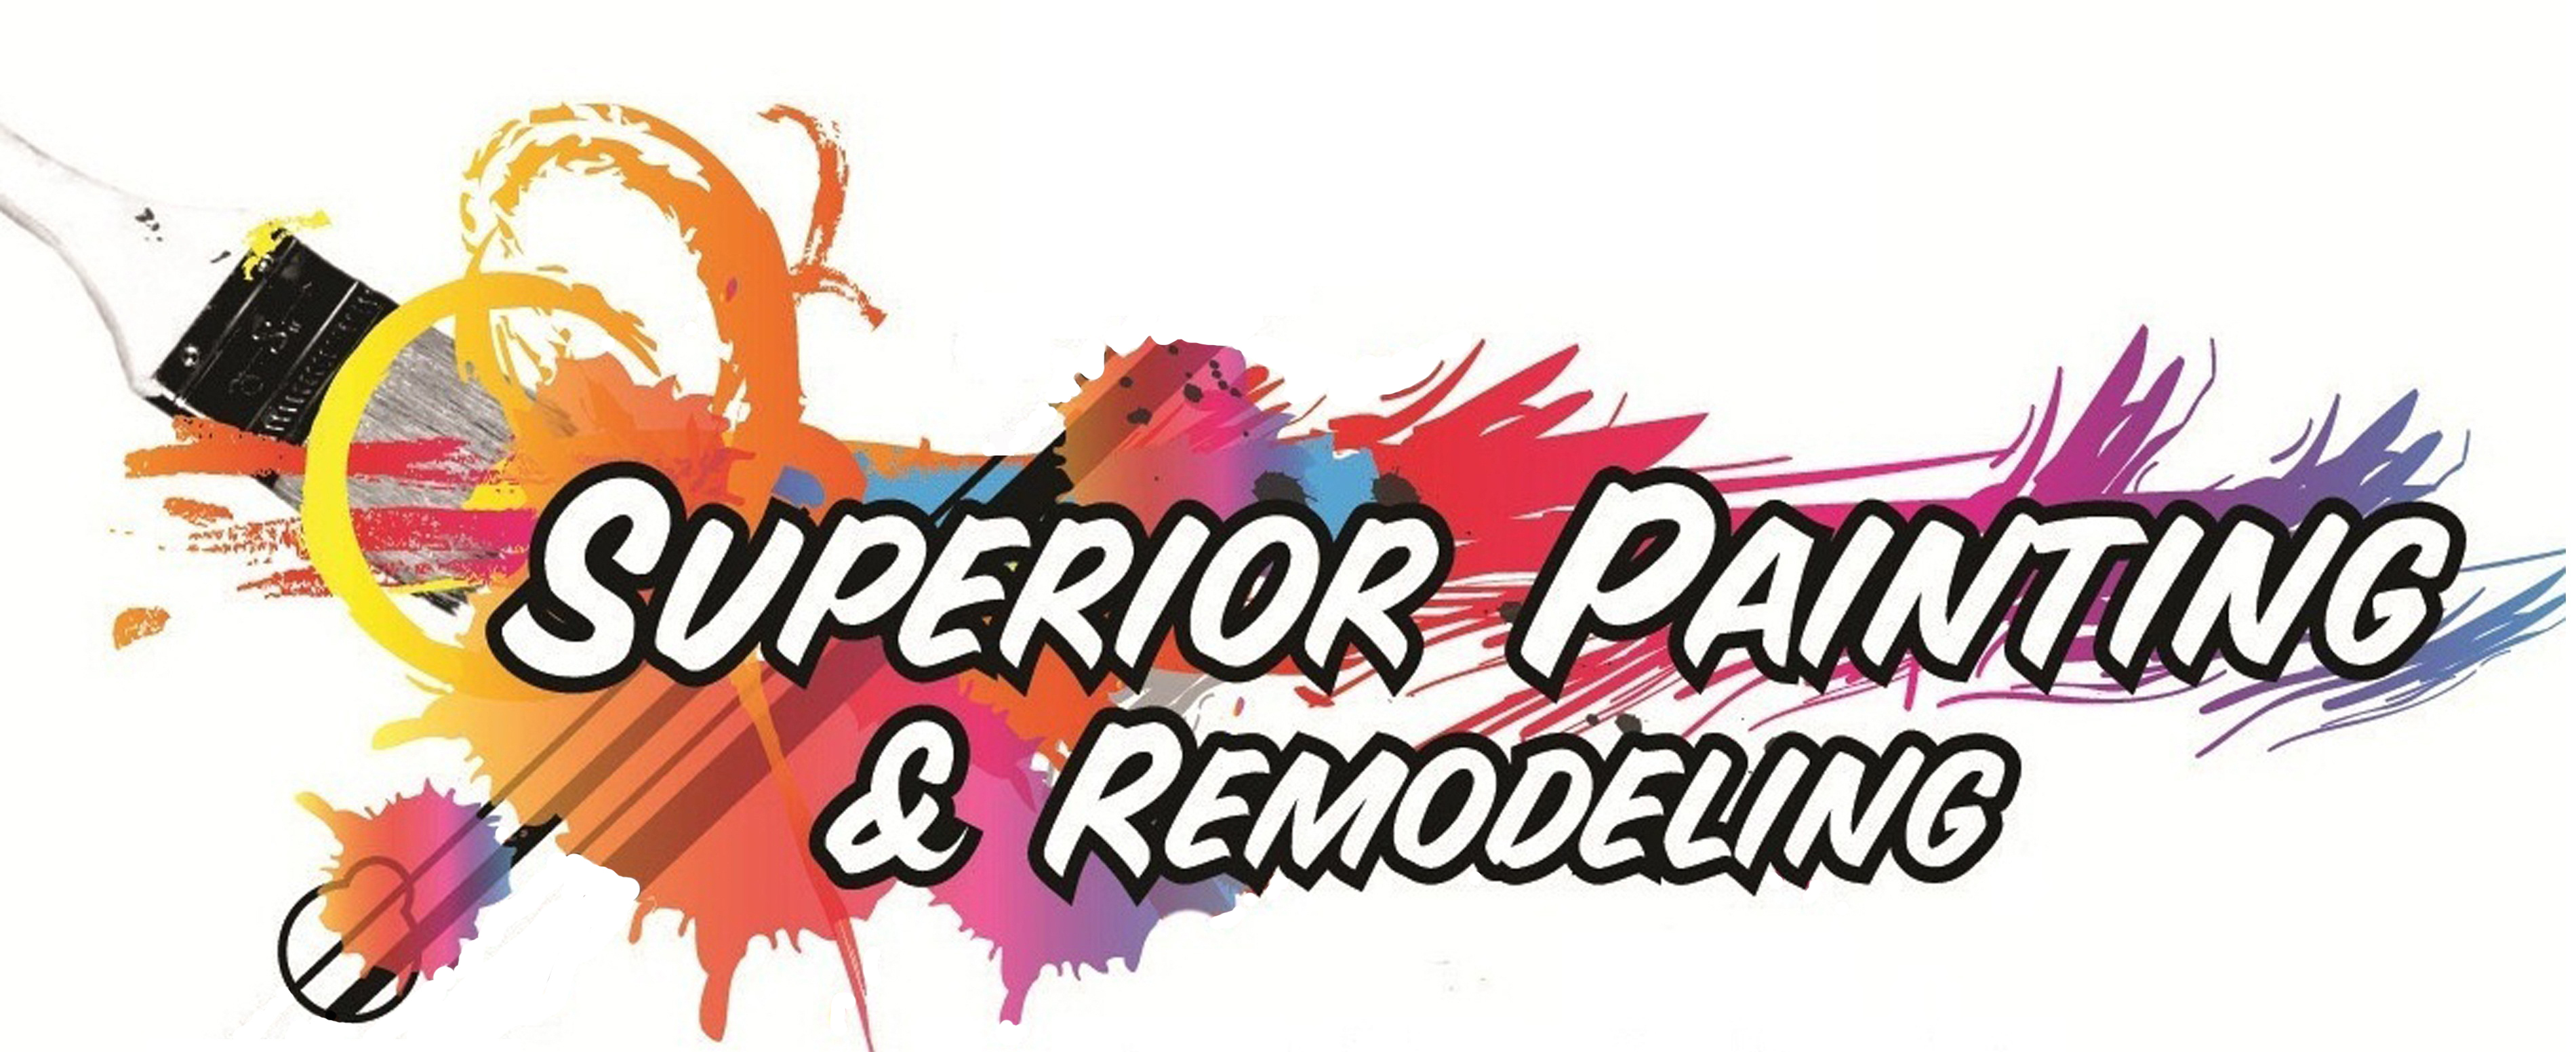 Professional painter logo house clipart.